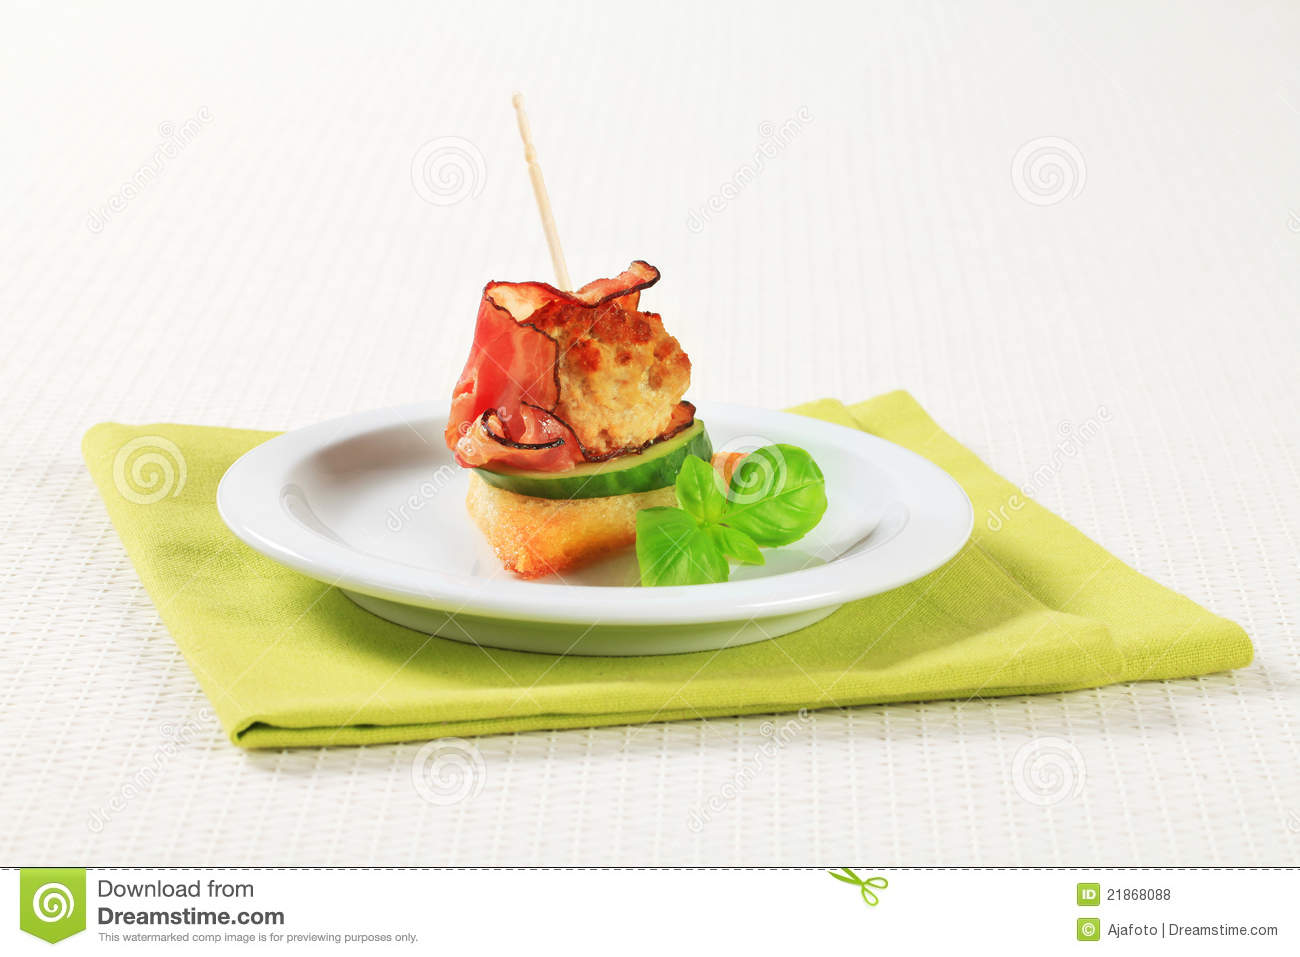 Meatball canape royalty free stock photos image 21868088 for Meatball canape